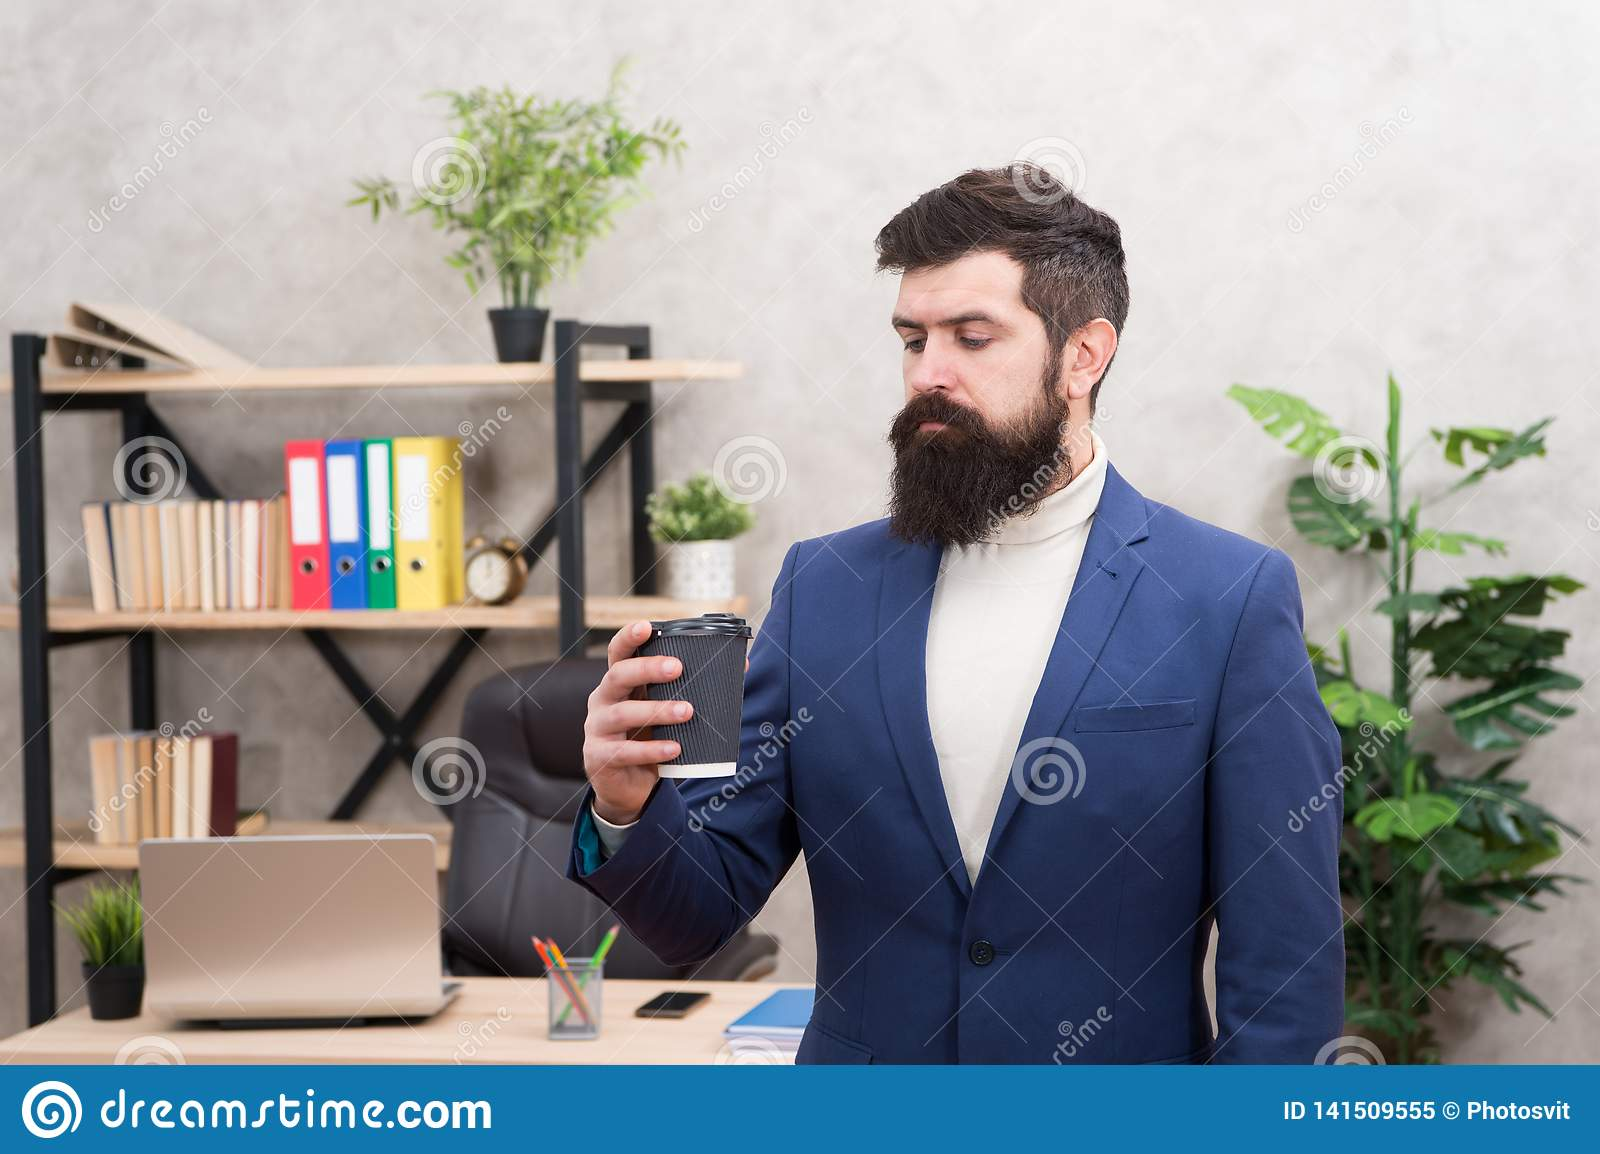 Reasons coffee improves office culture. Man bearded manager businessman entrepreneur hold cup of coffee. Relaxed manager